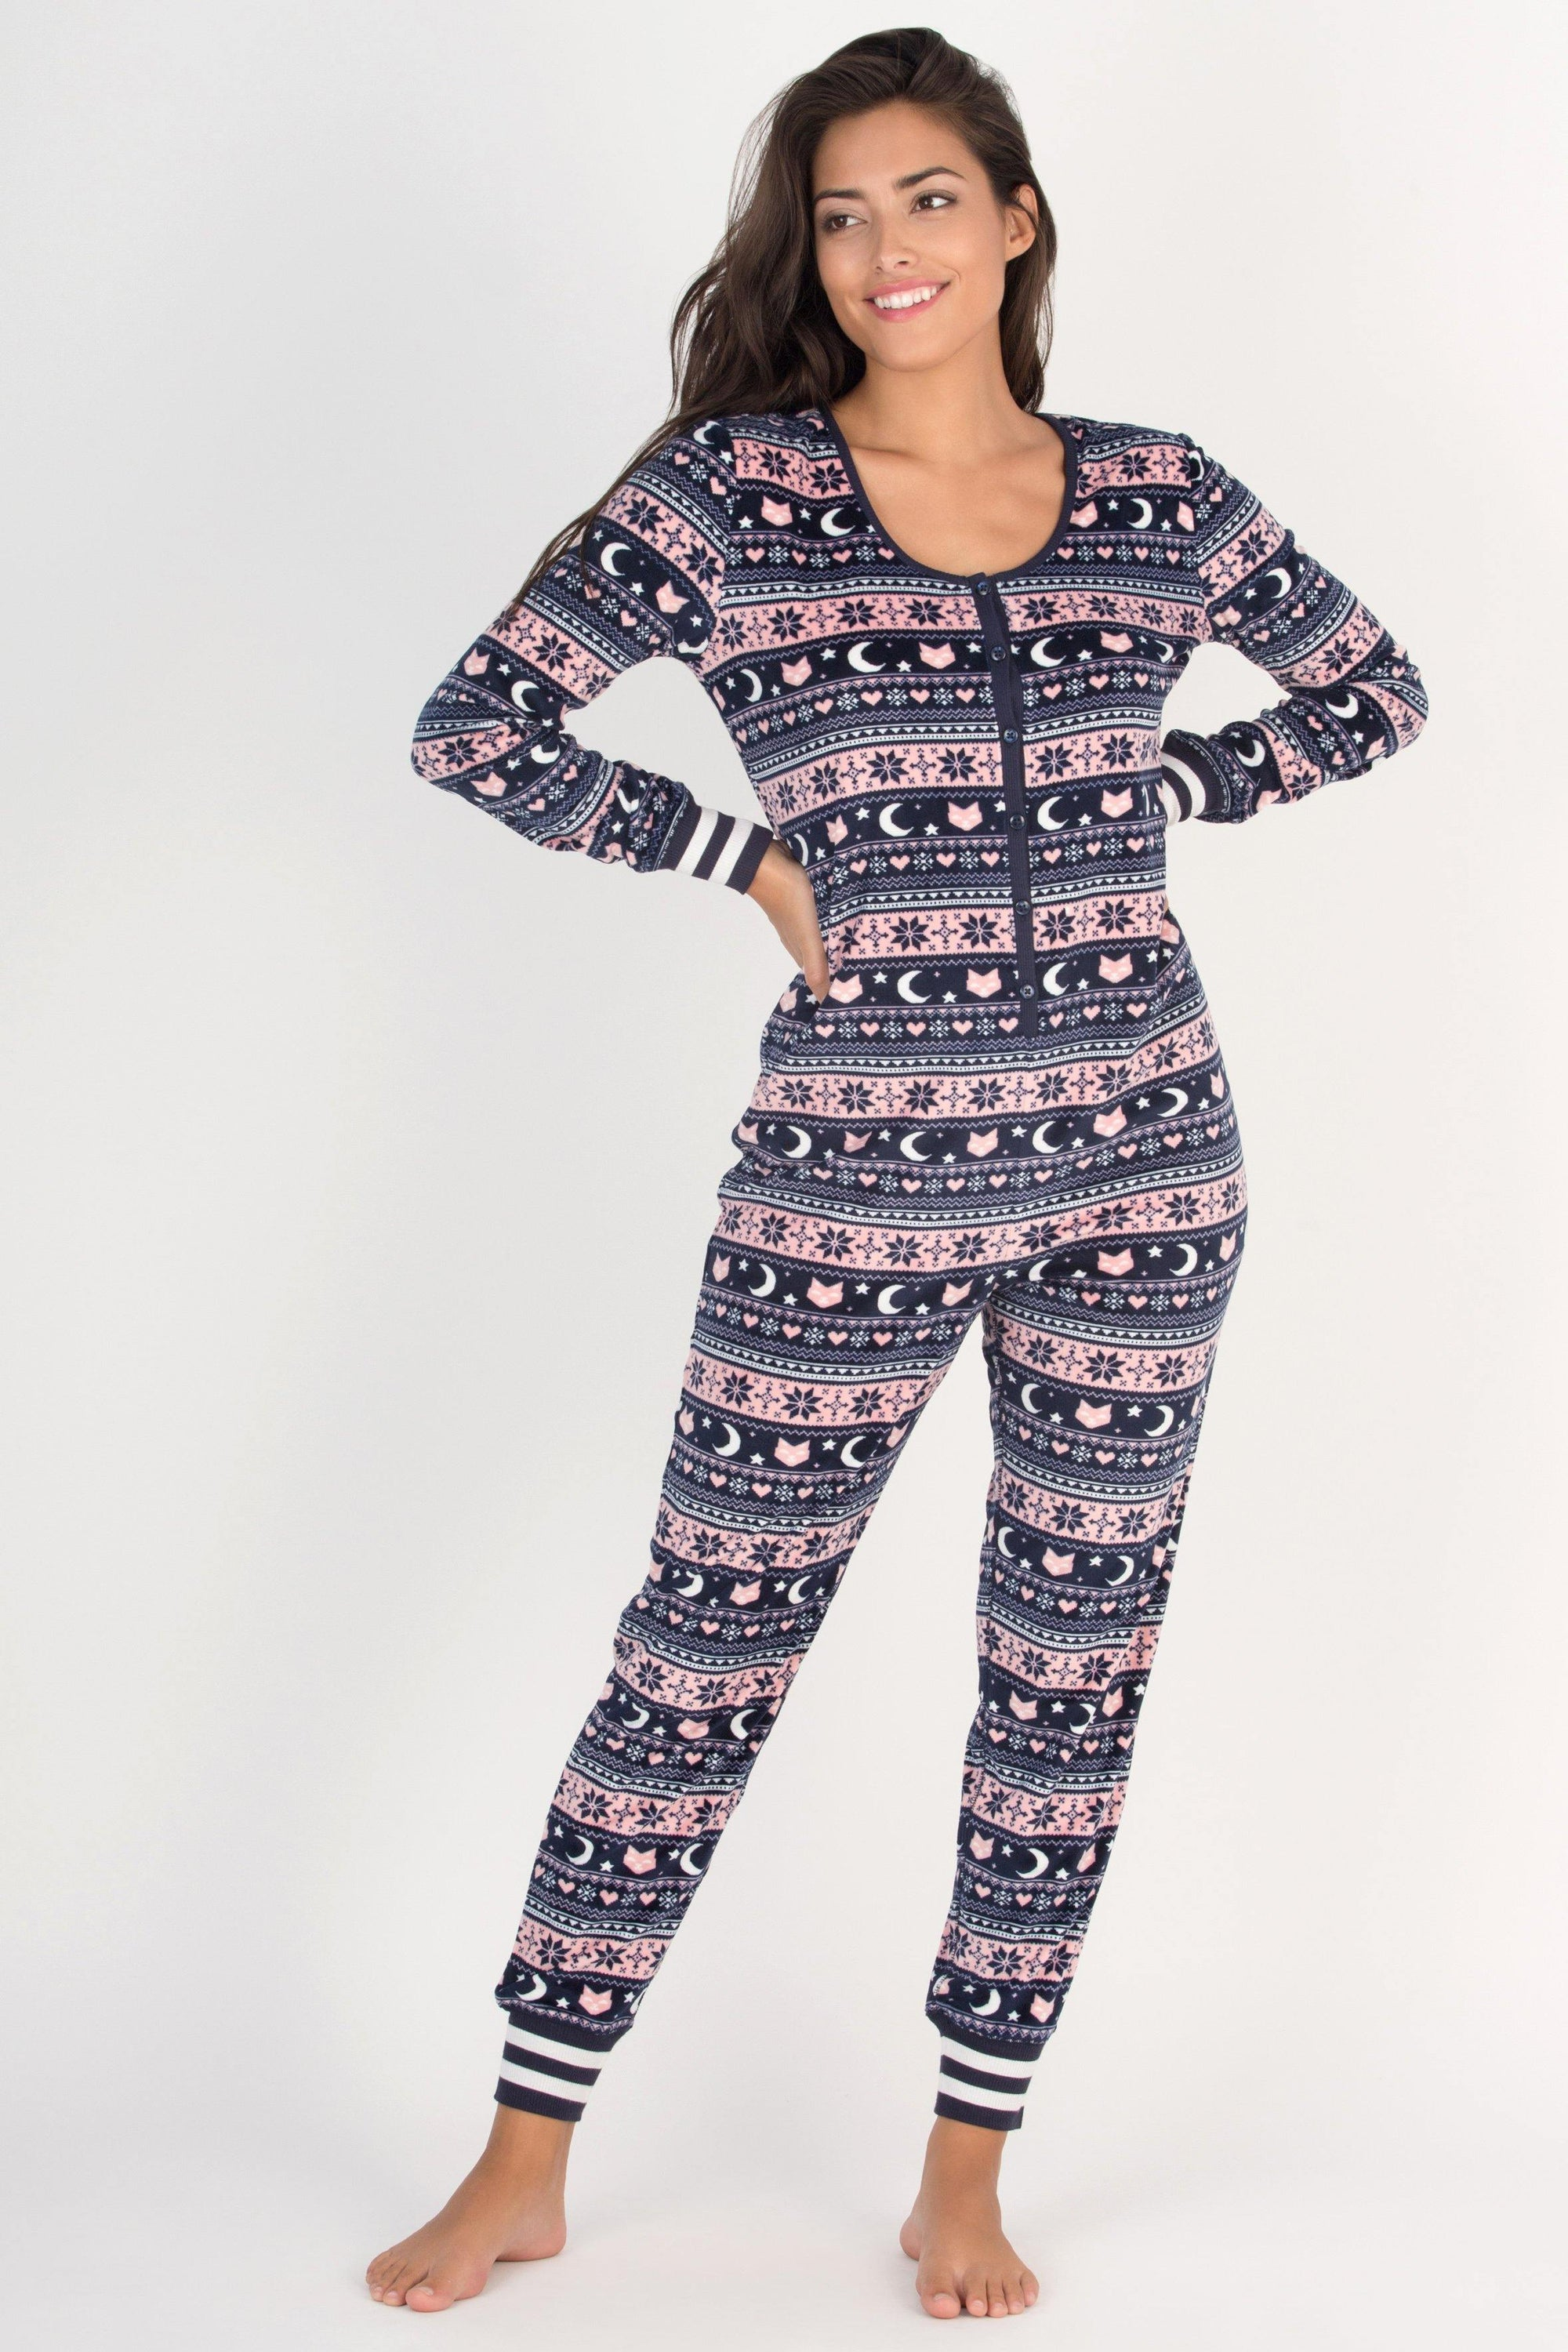 Cocoa Cozy Fleece Onesie